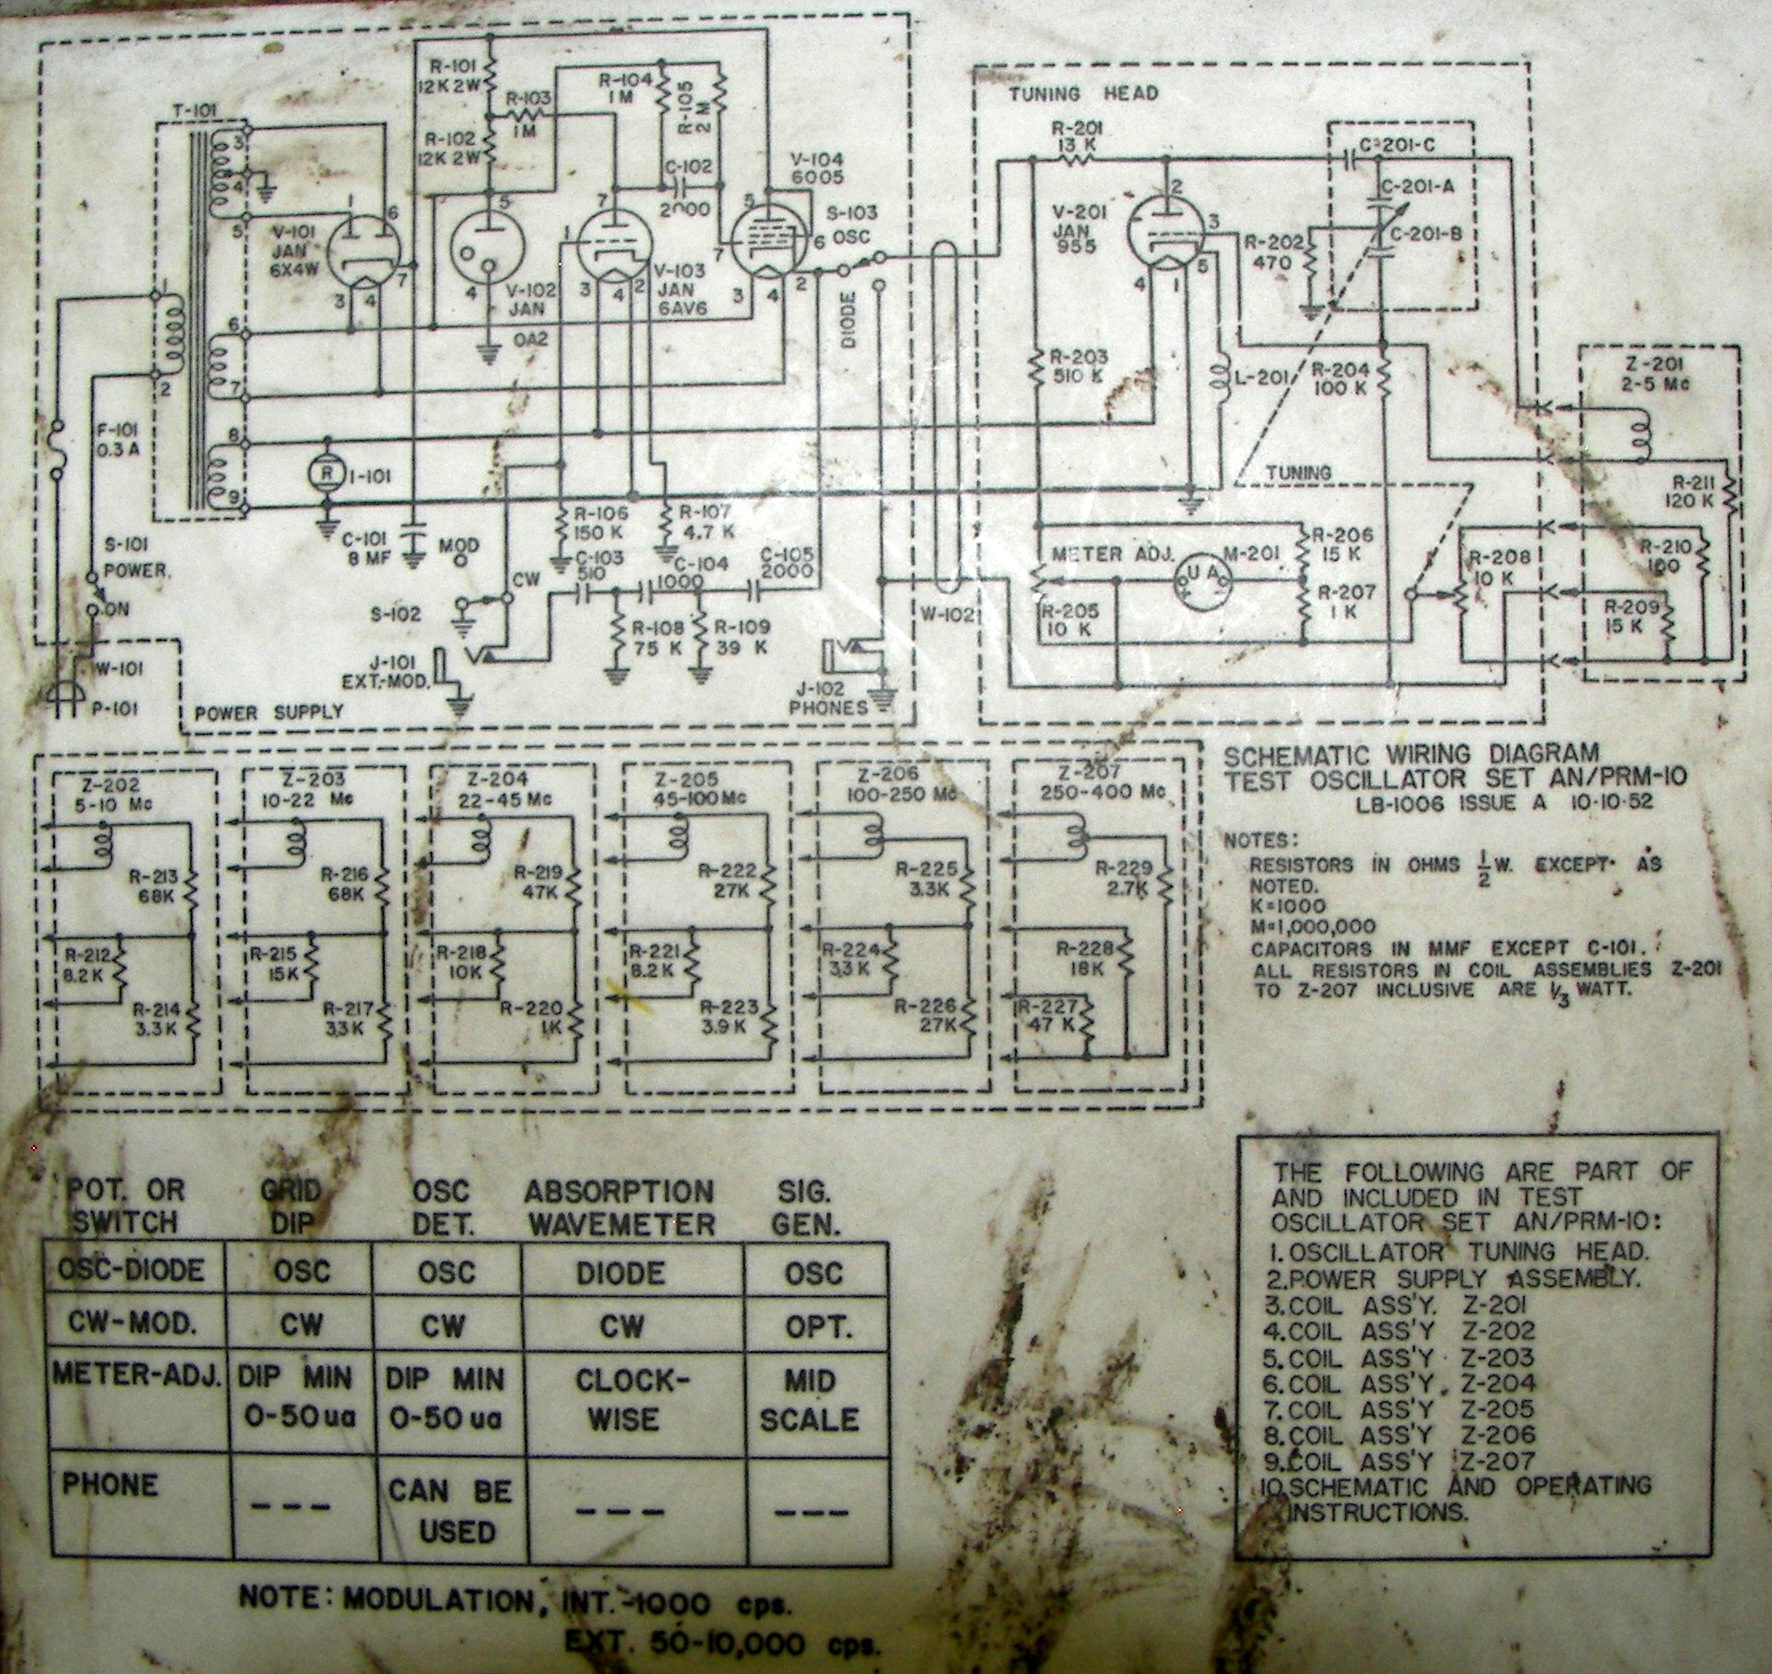 Military Trailer Wiring Diagram on m35a2 engine diagram